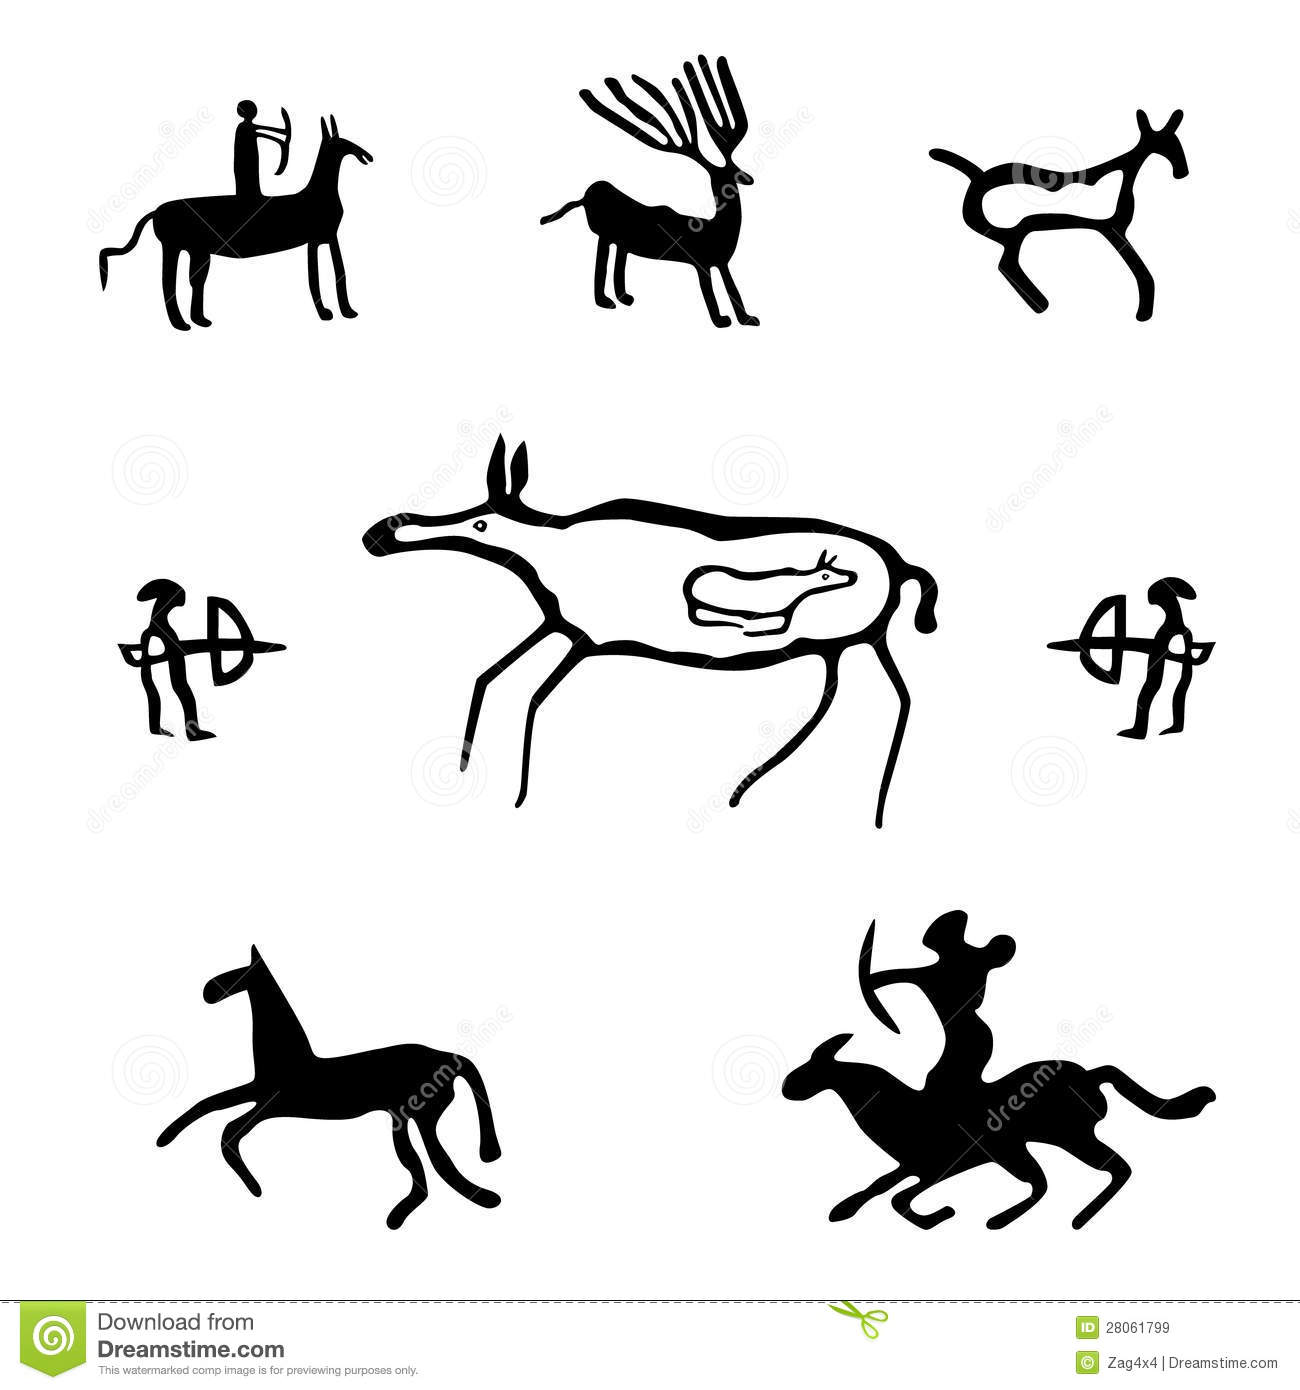 Caveman drawings clip art.